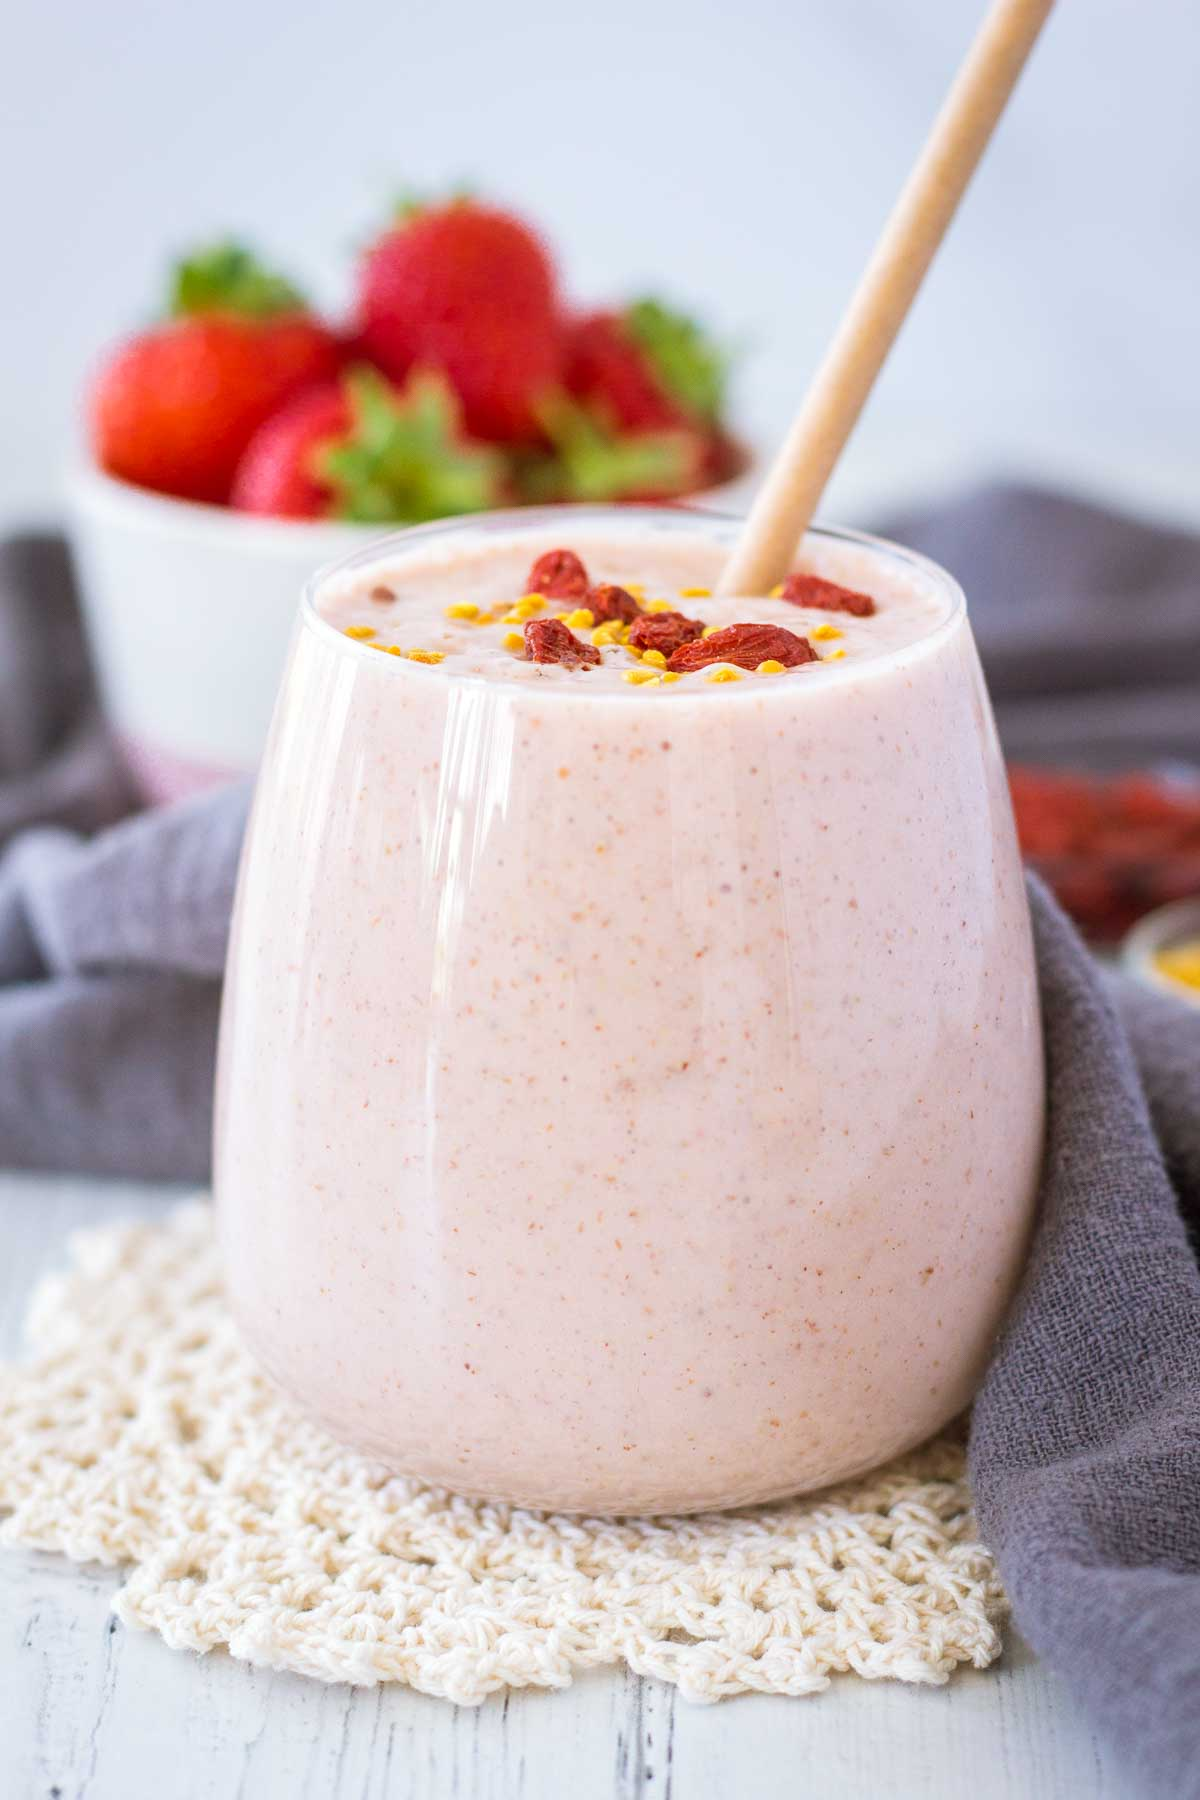 Strawberry Peanut Butter Smoothie served in a glass topped with goji berries